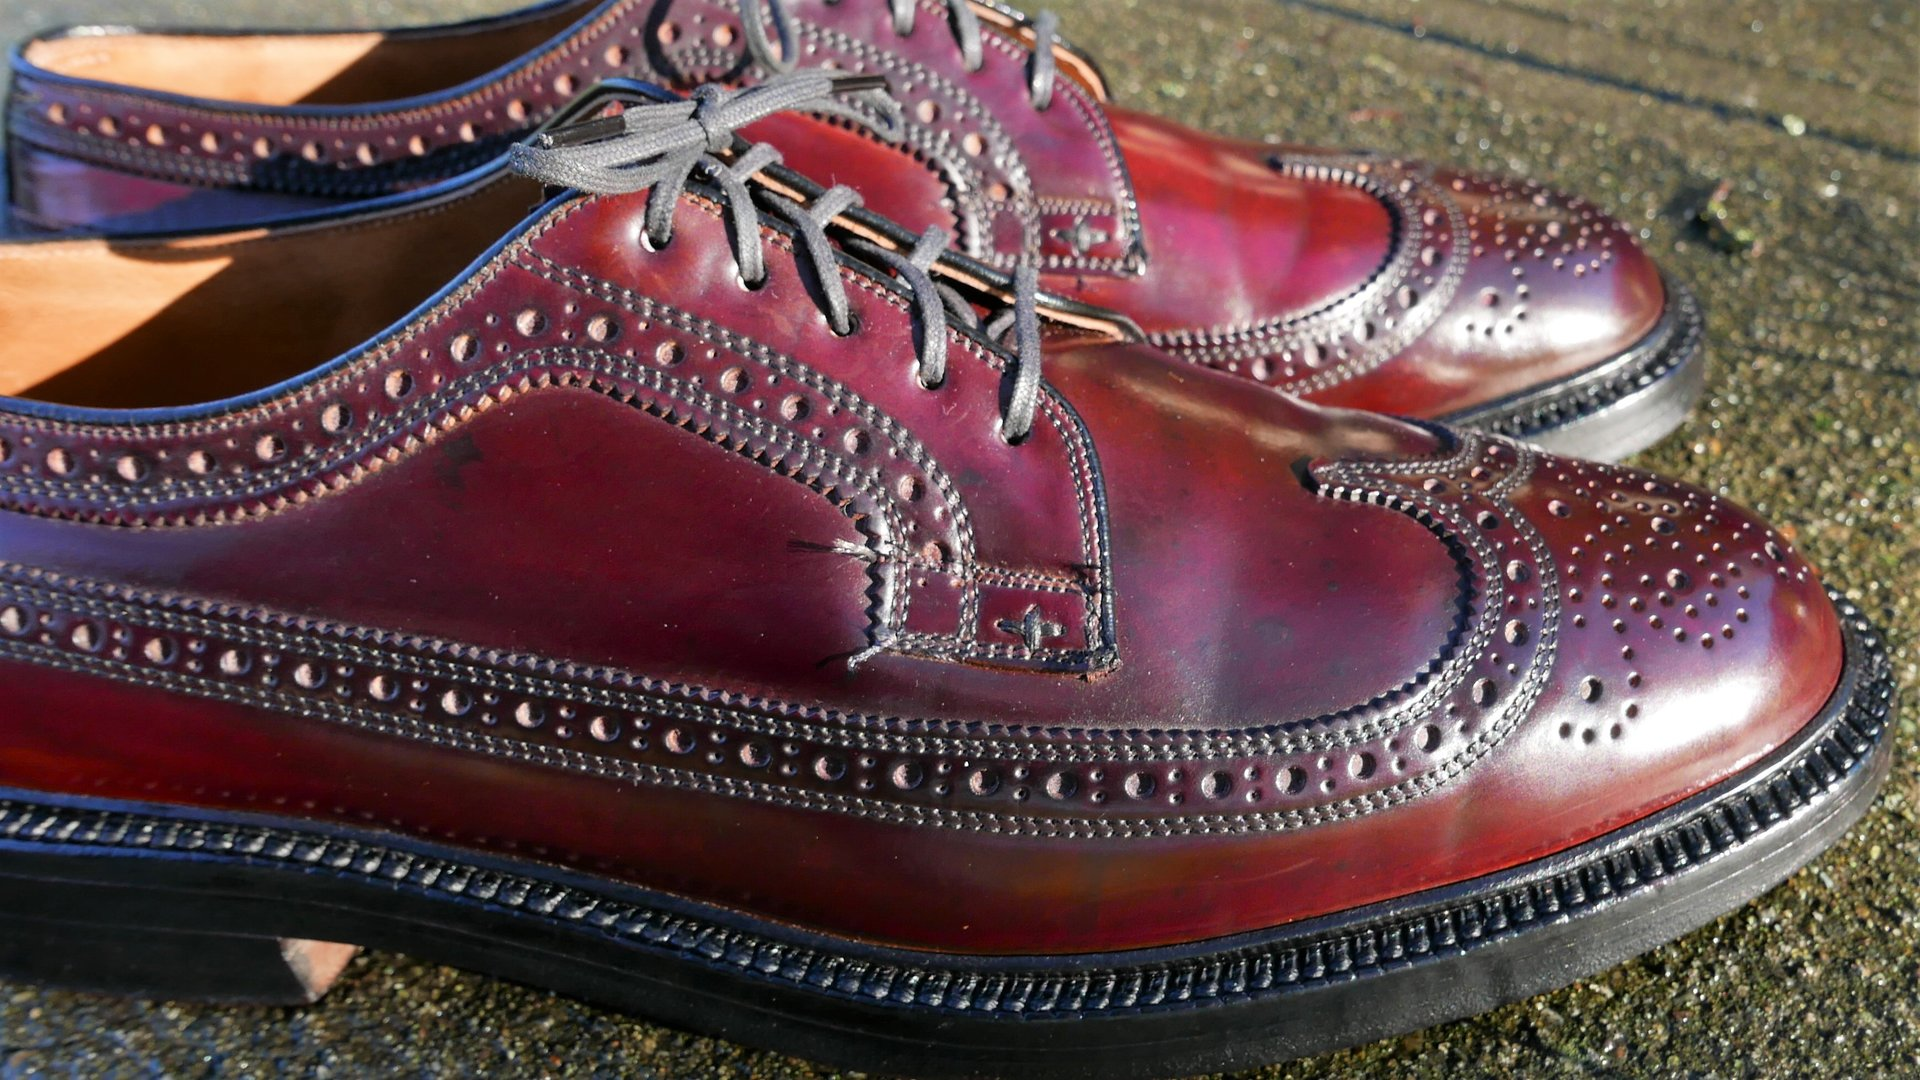 Shell Cordovan polishing